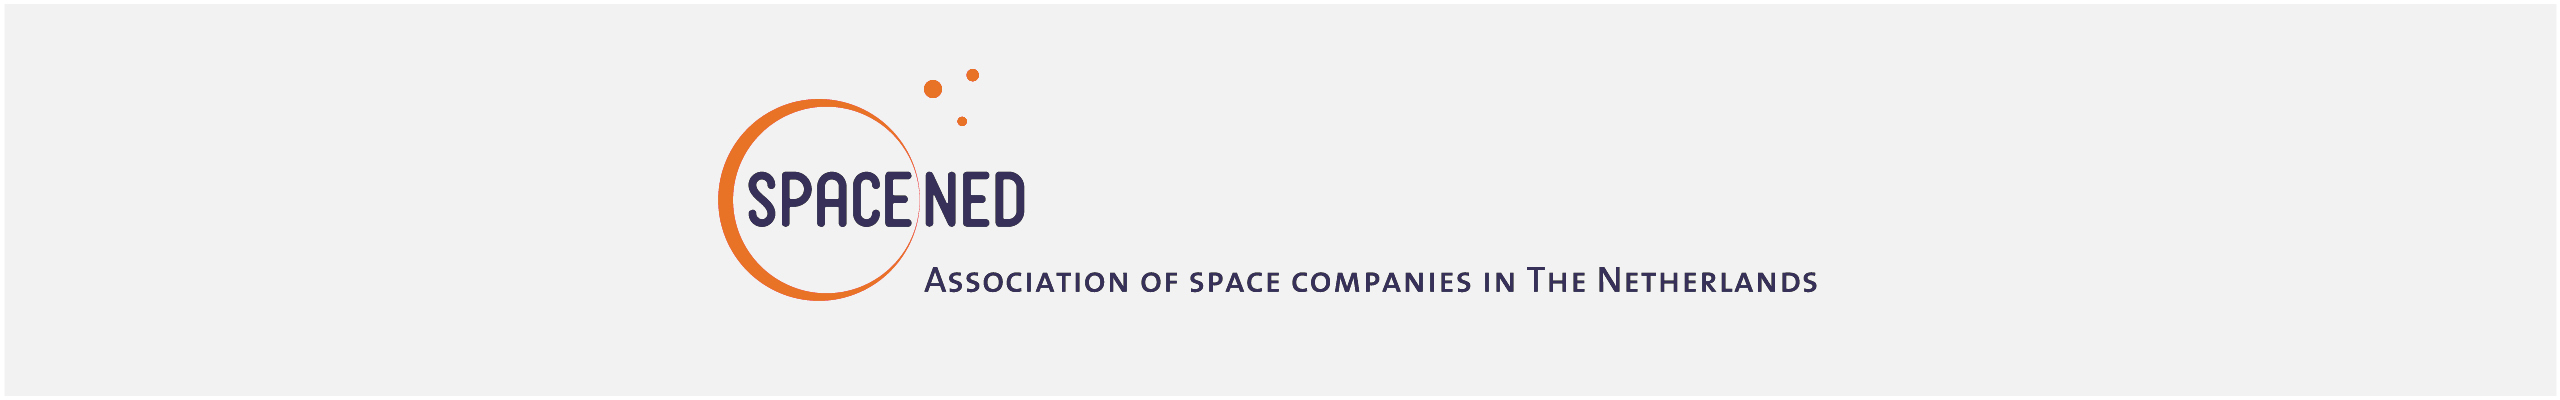 SpaceNed_Logo_Compleet